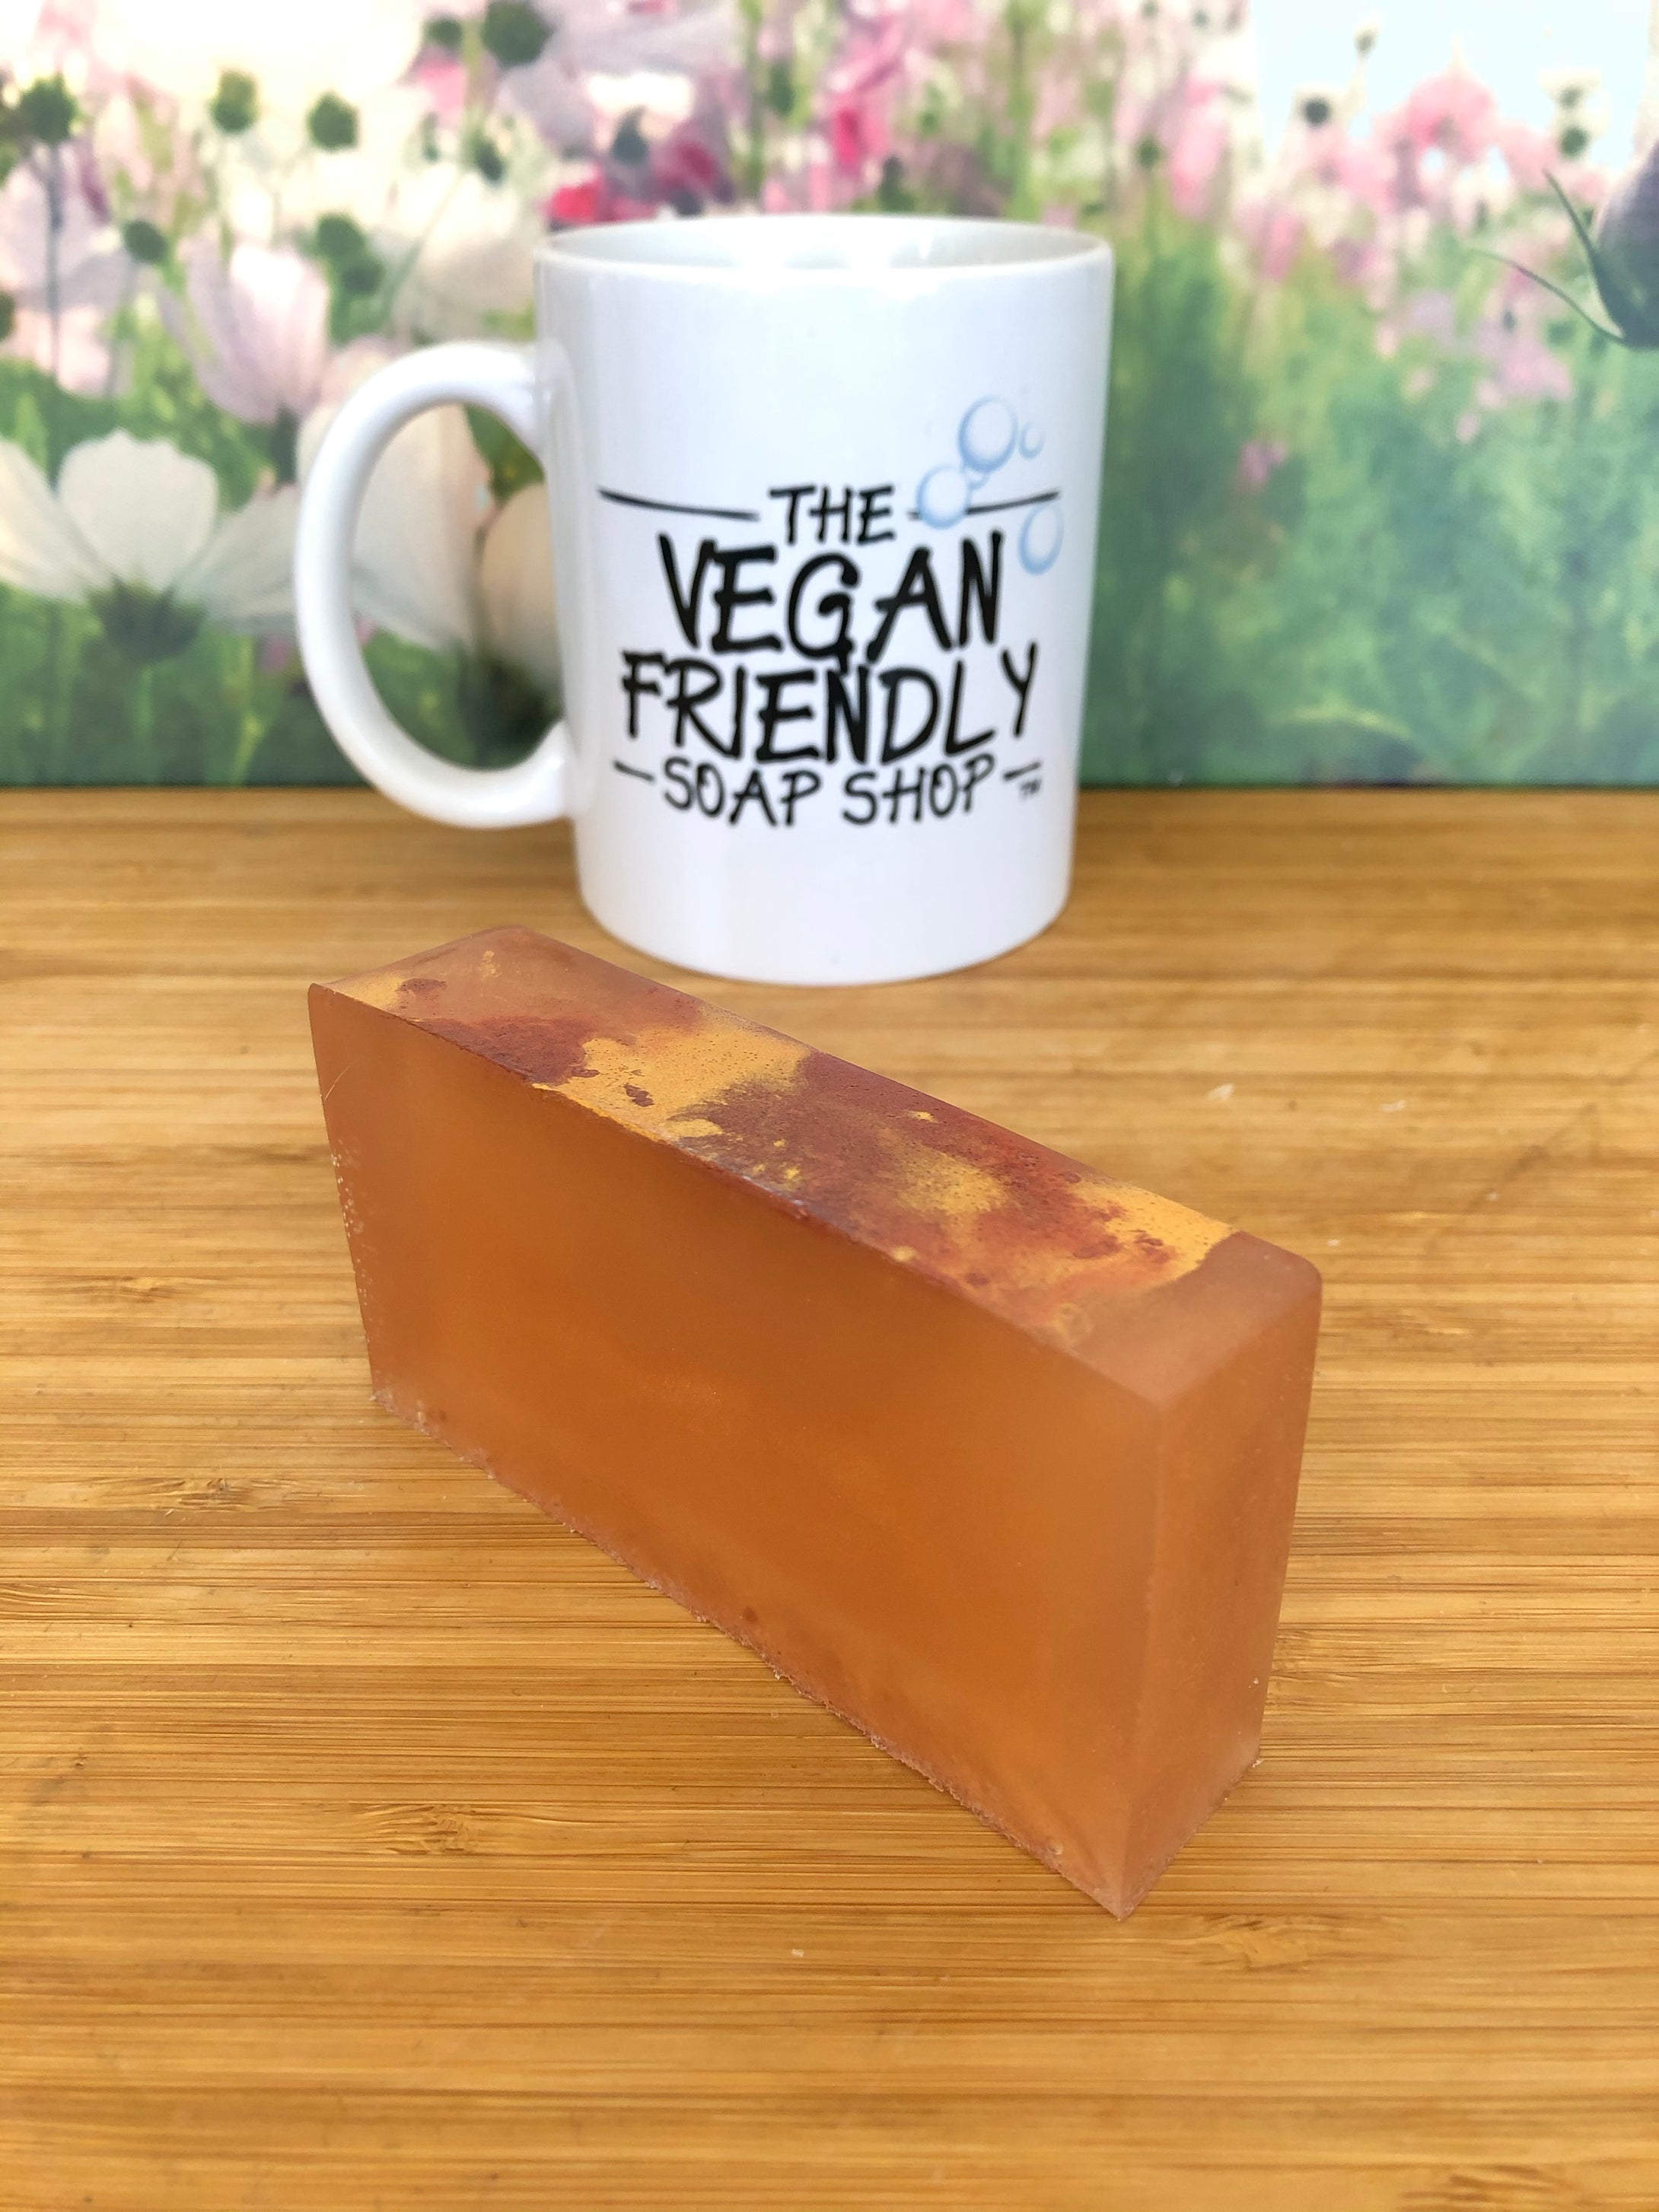 NEW! Vanilla, Sandalwood & Patchouli Luxury Fragrance - Théo's Planet Soap Bar 110g